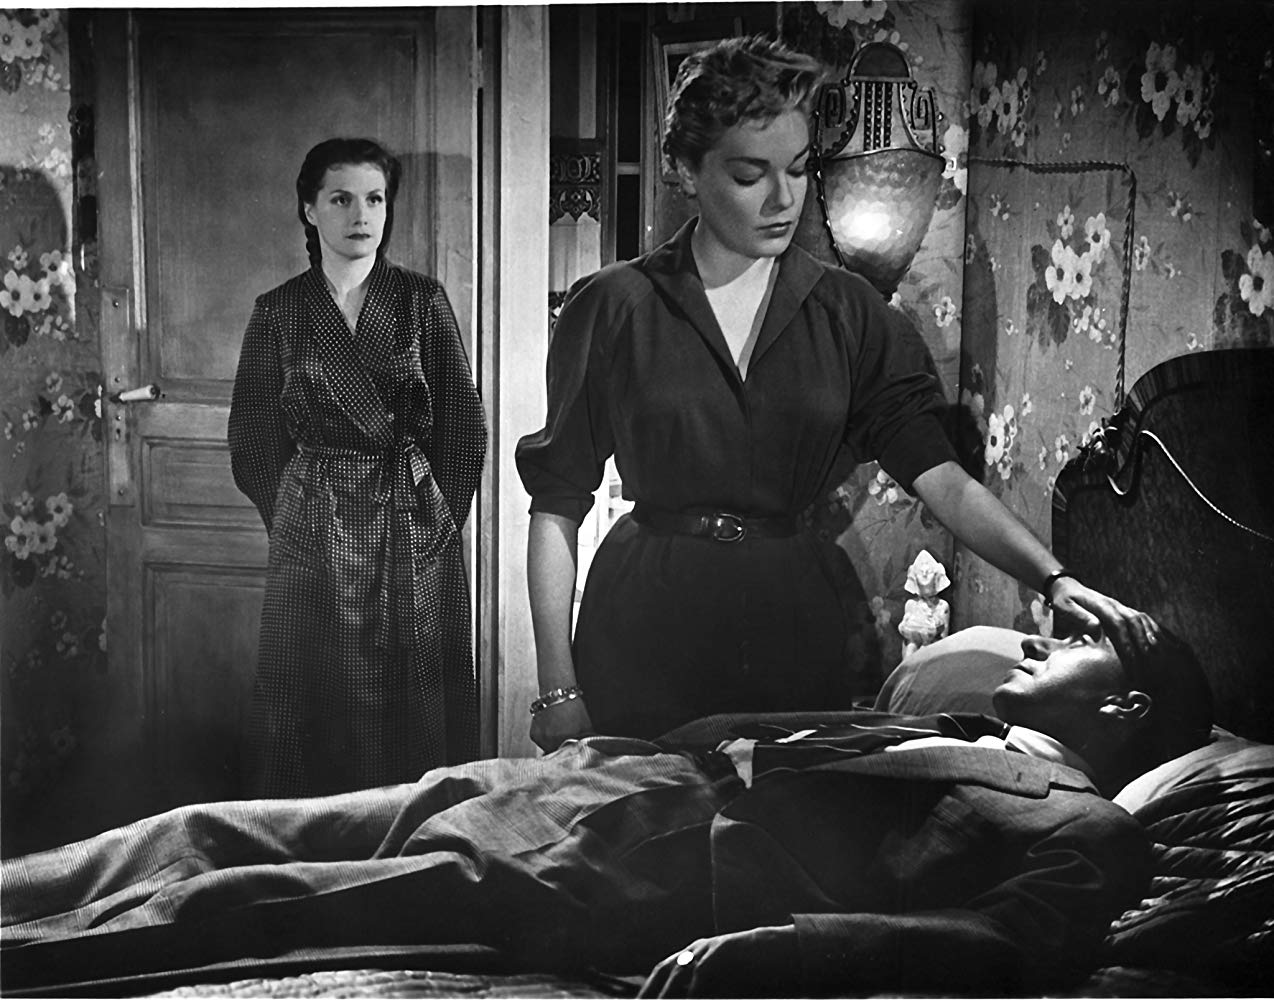 (l to r) Vera Couzot and Simon Signoret stand over Paul Meurisse's dead body in Les Diaboliques (1955)